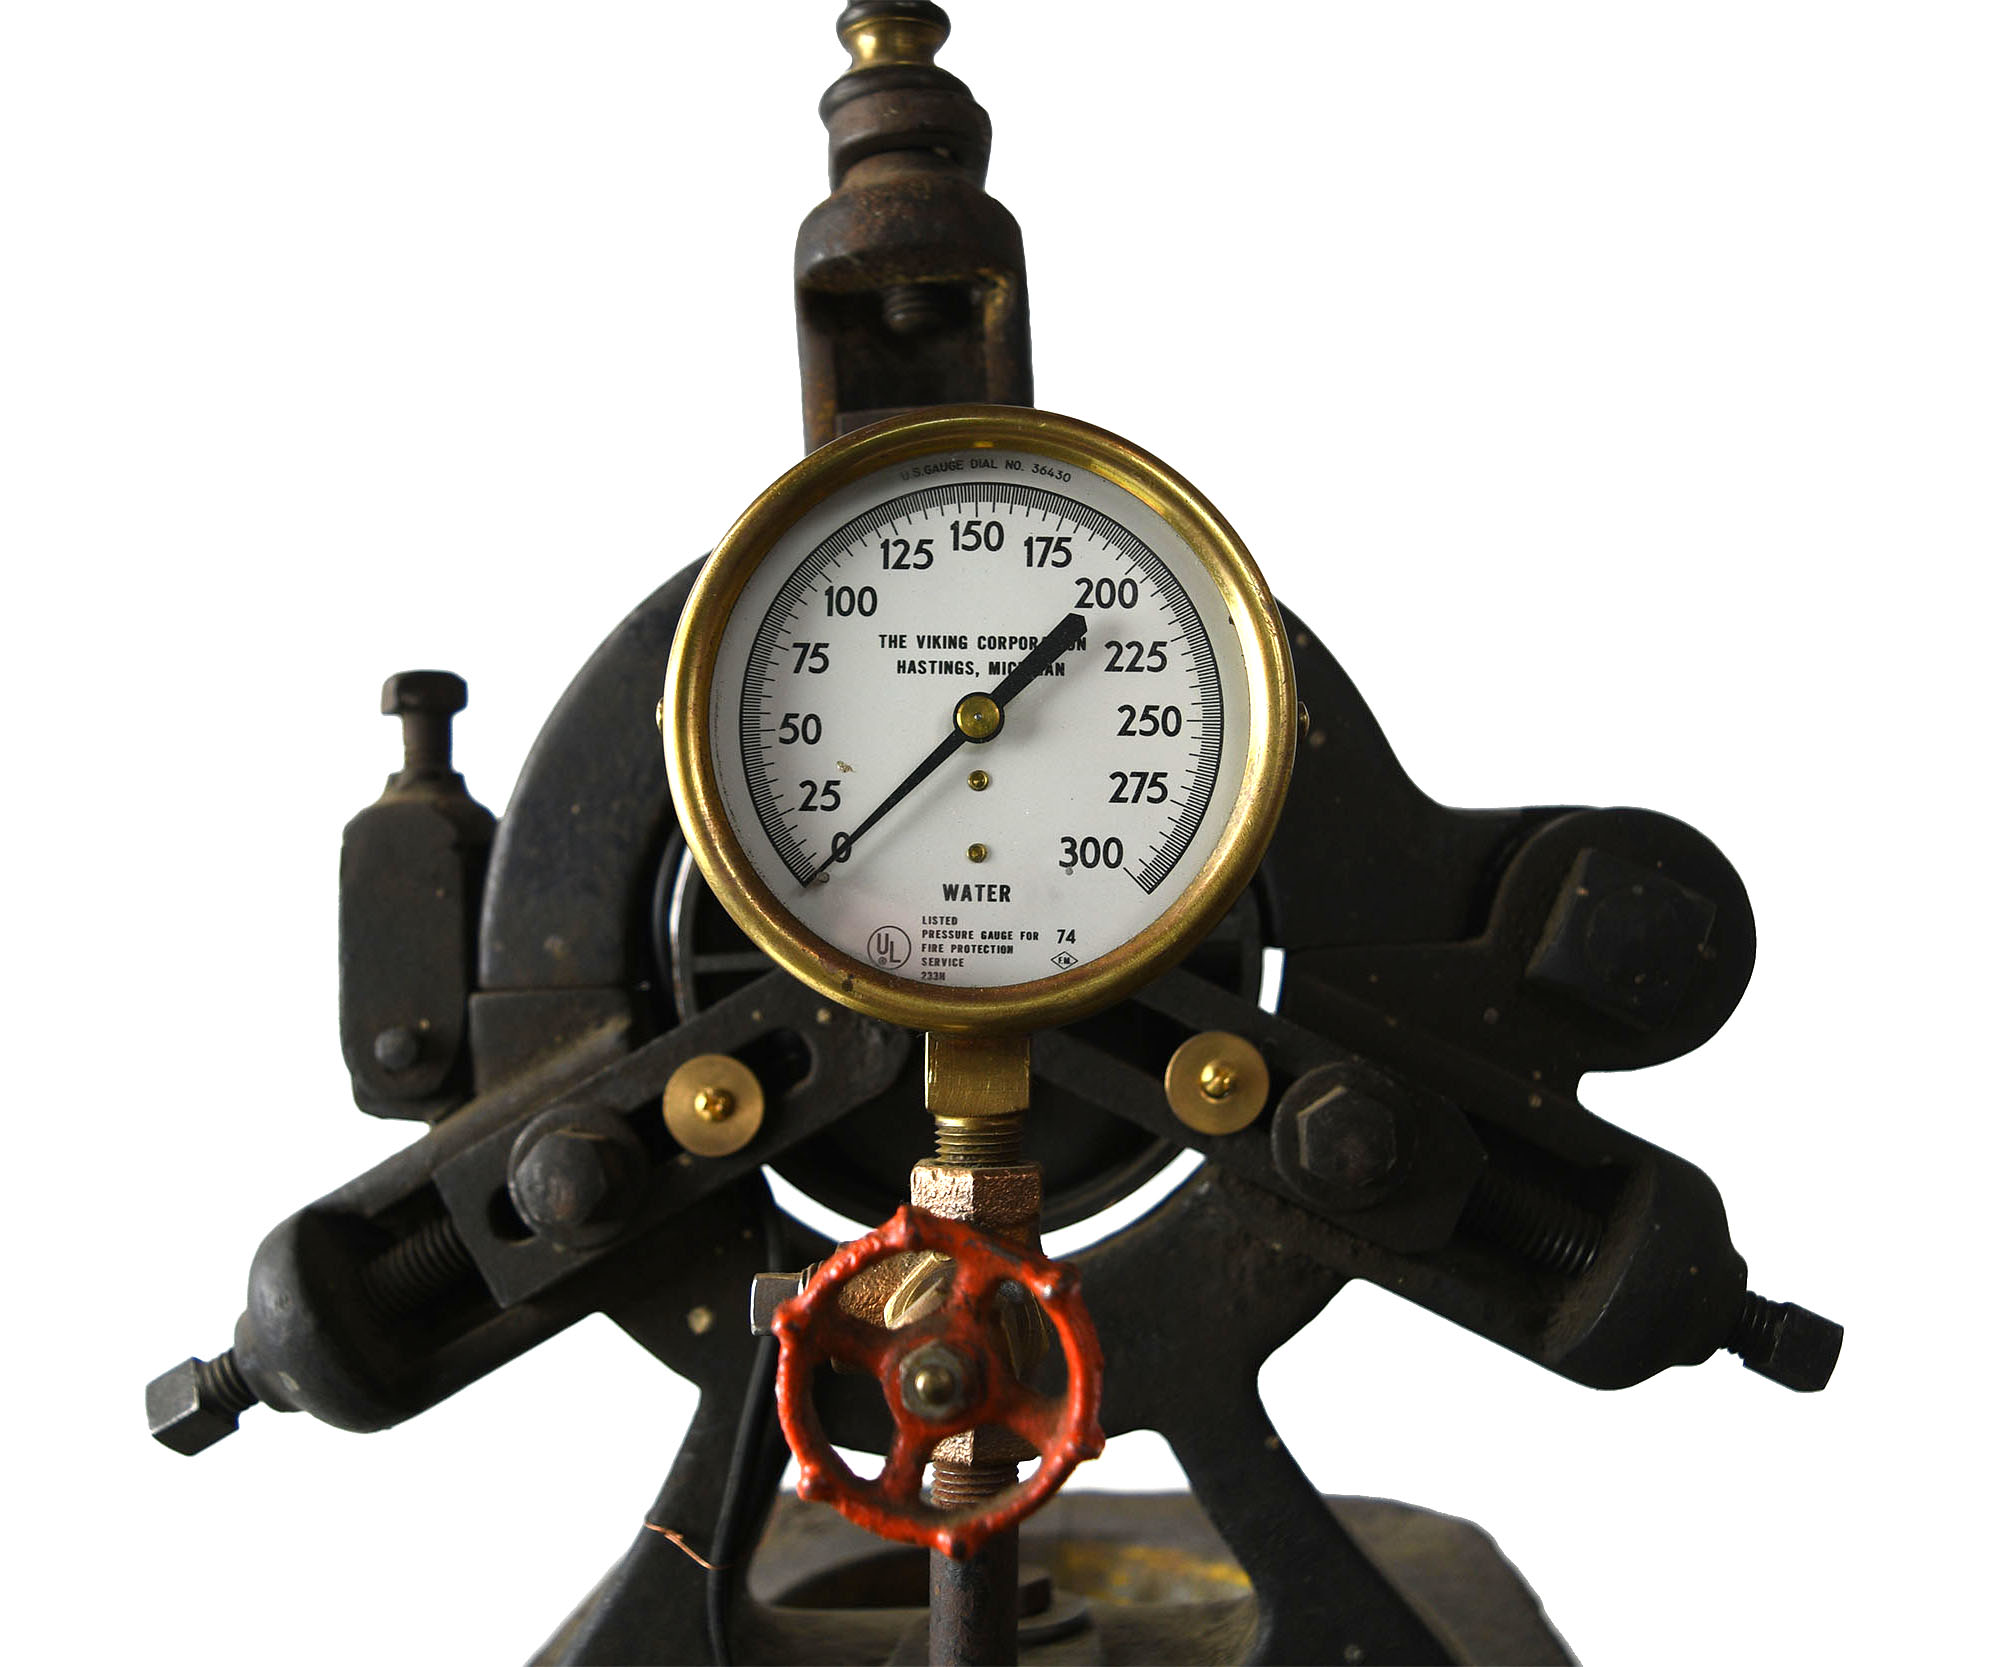 45177 industrial steampunk light meter.jpg